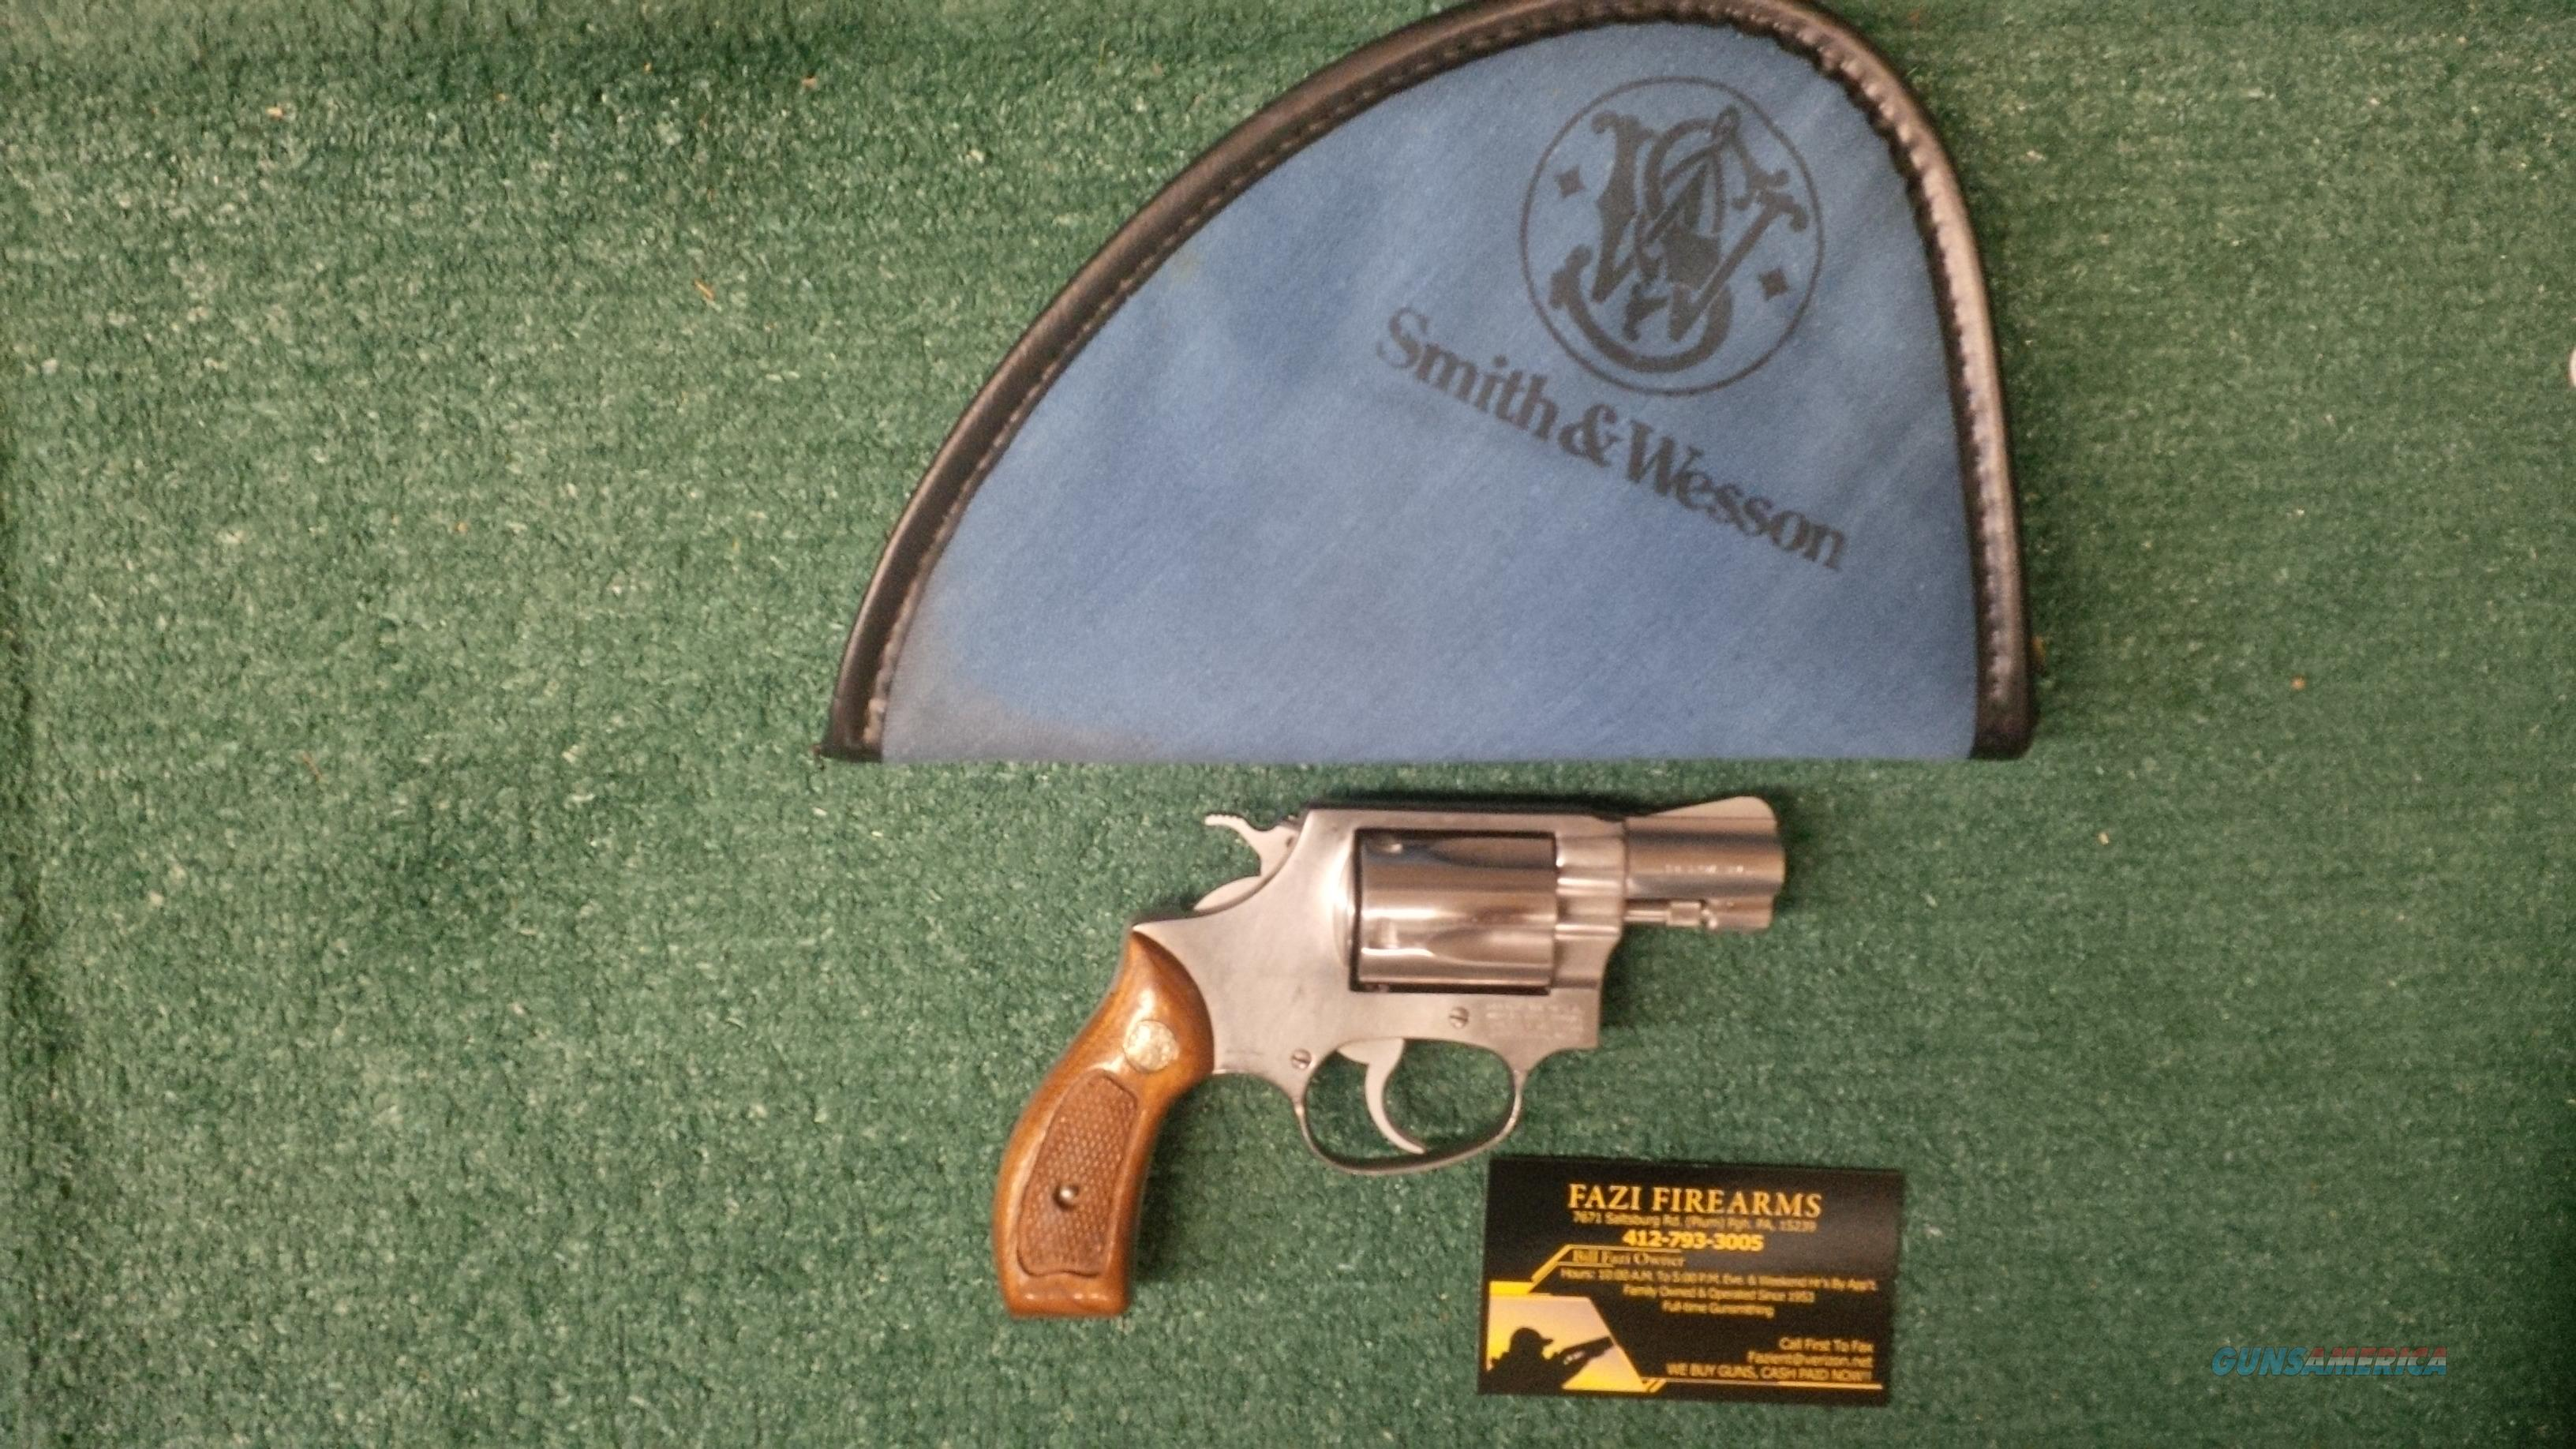 Smith & Wesson 60 .38 Special 5 Shot Chiefs Special  Guns > Pistols > Smith & Wesson Revolvers > Small Frame ( J )